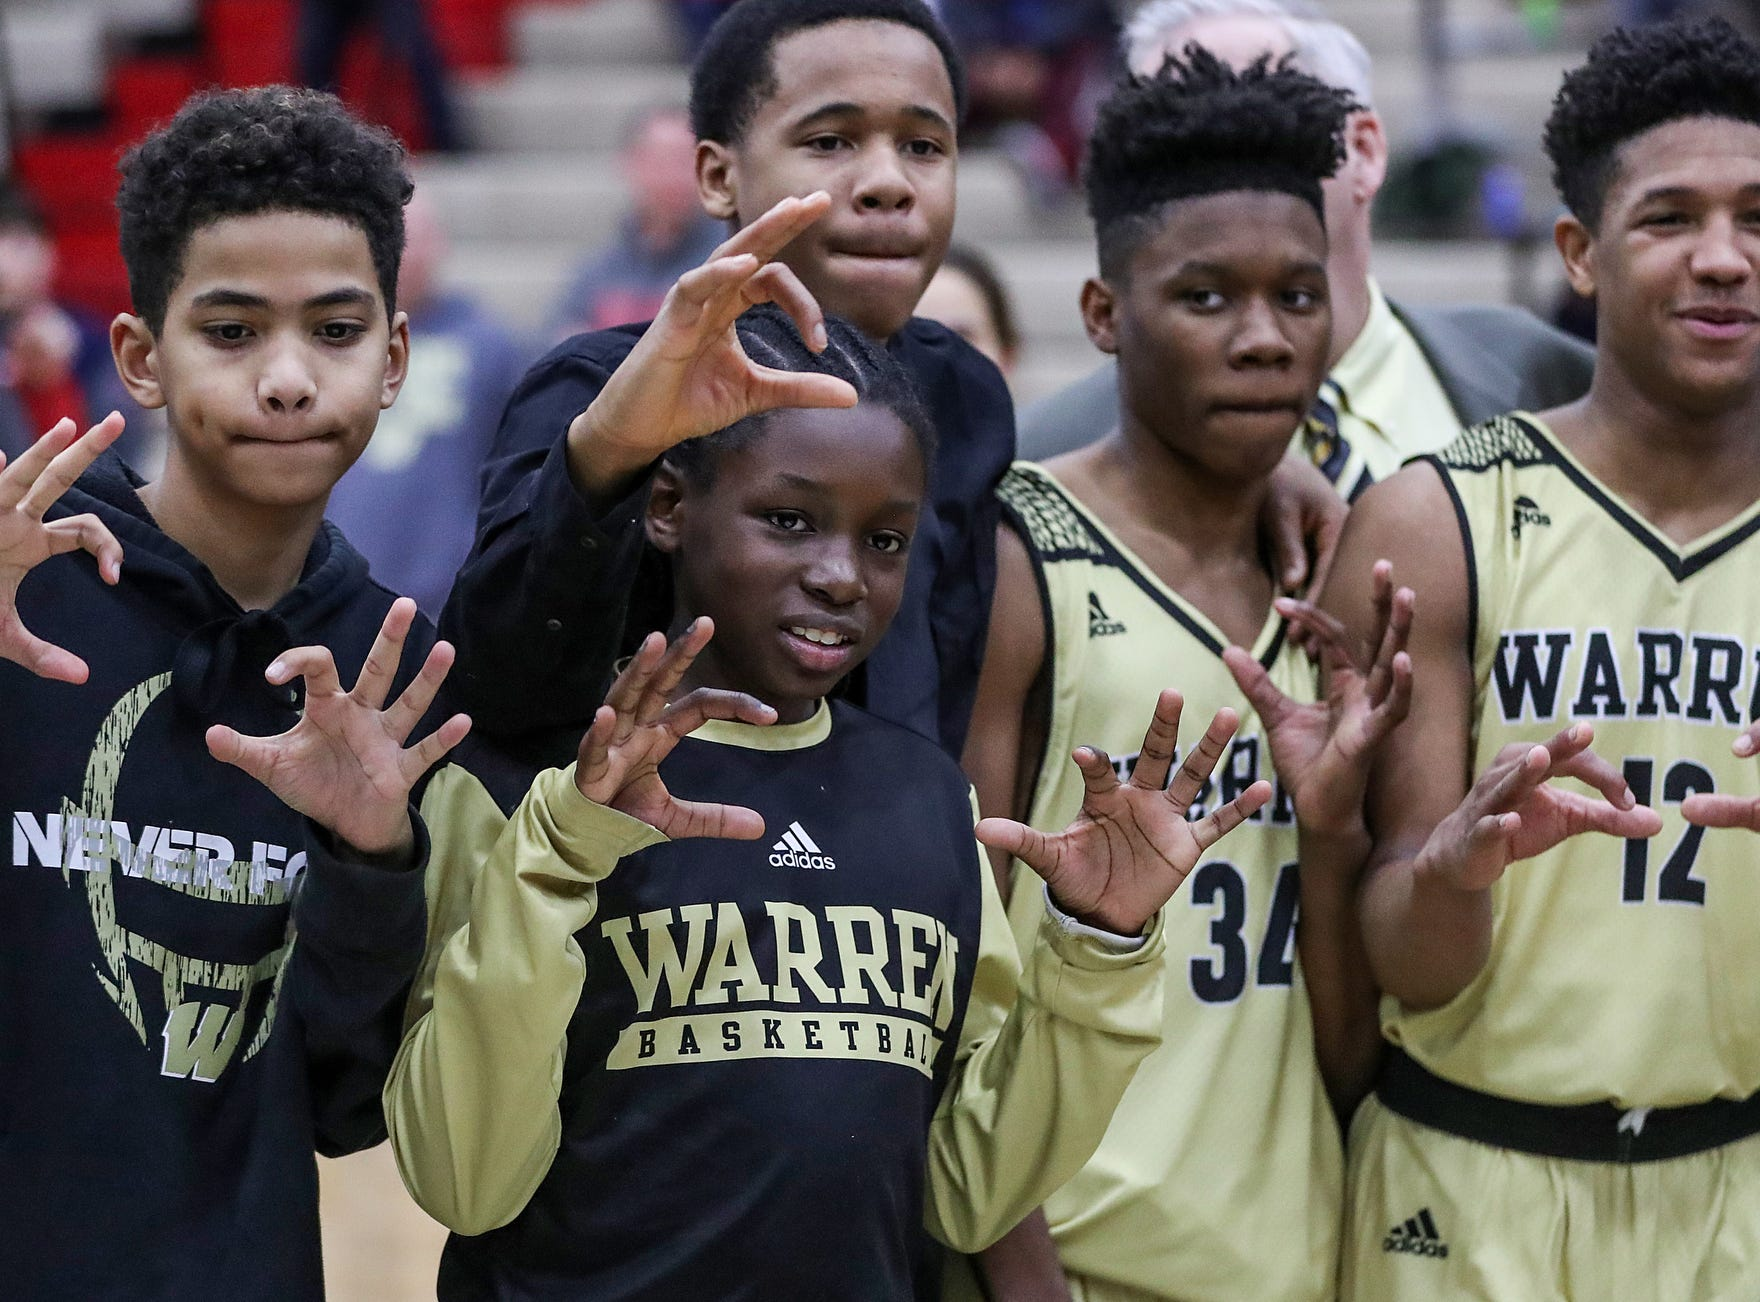 The Warren Central Warriors celebrate after winning the Marion County tournament title at Southport High School in Indianapolis, Monday, Jan. 14, 2019. The victory marks a 46-game winning streak for the Warriors, the third-longest in state history.